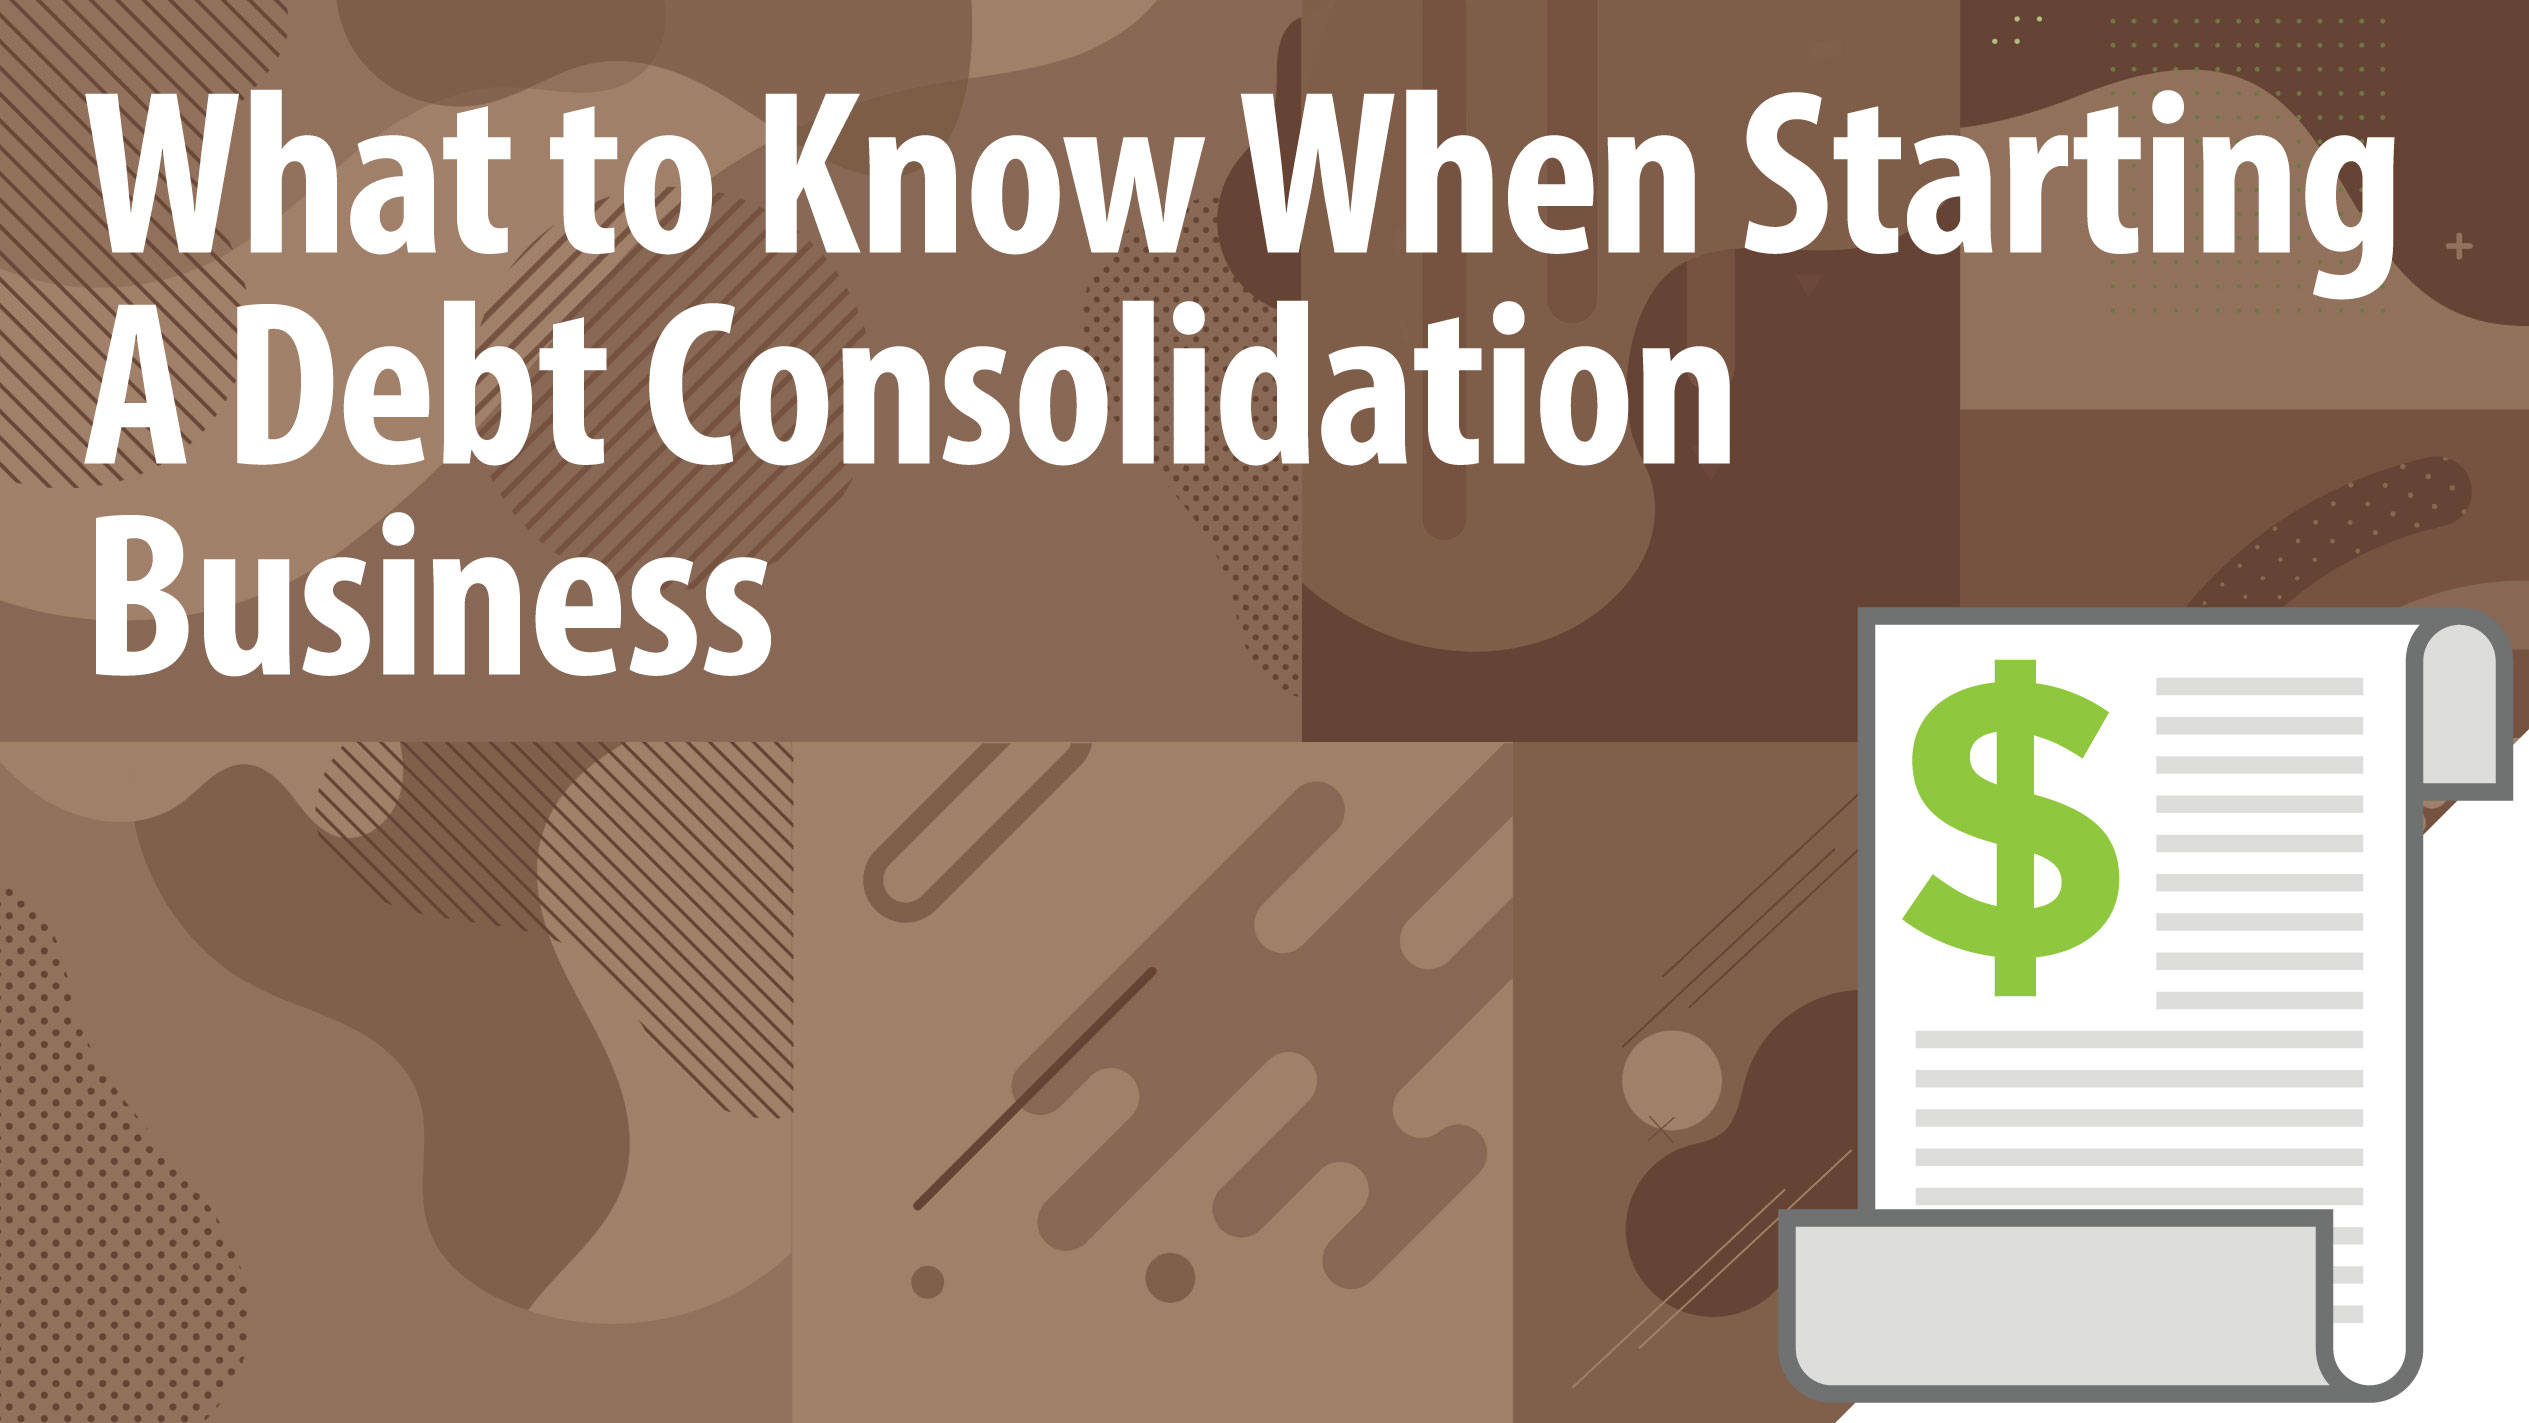 What to Know When Starting A Debt Consolidation Business